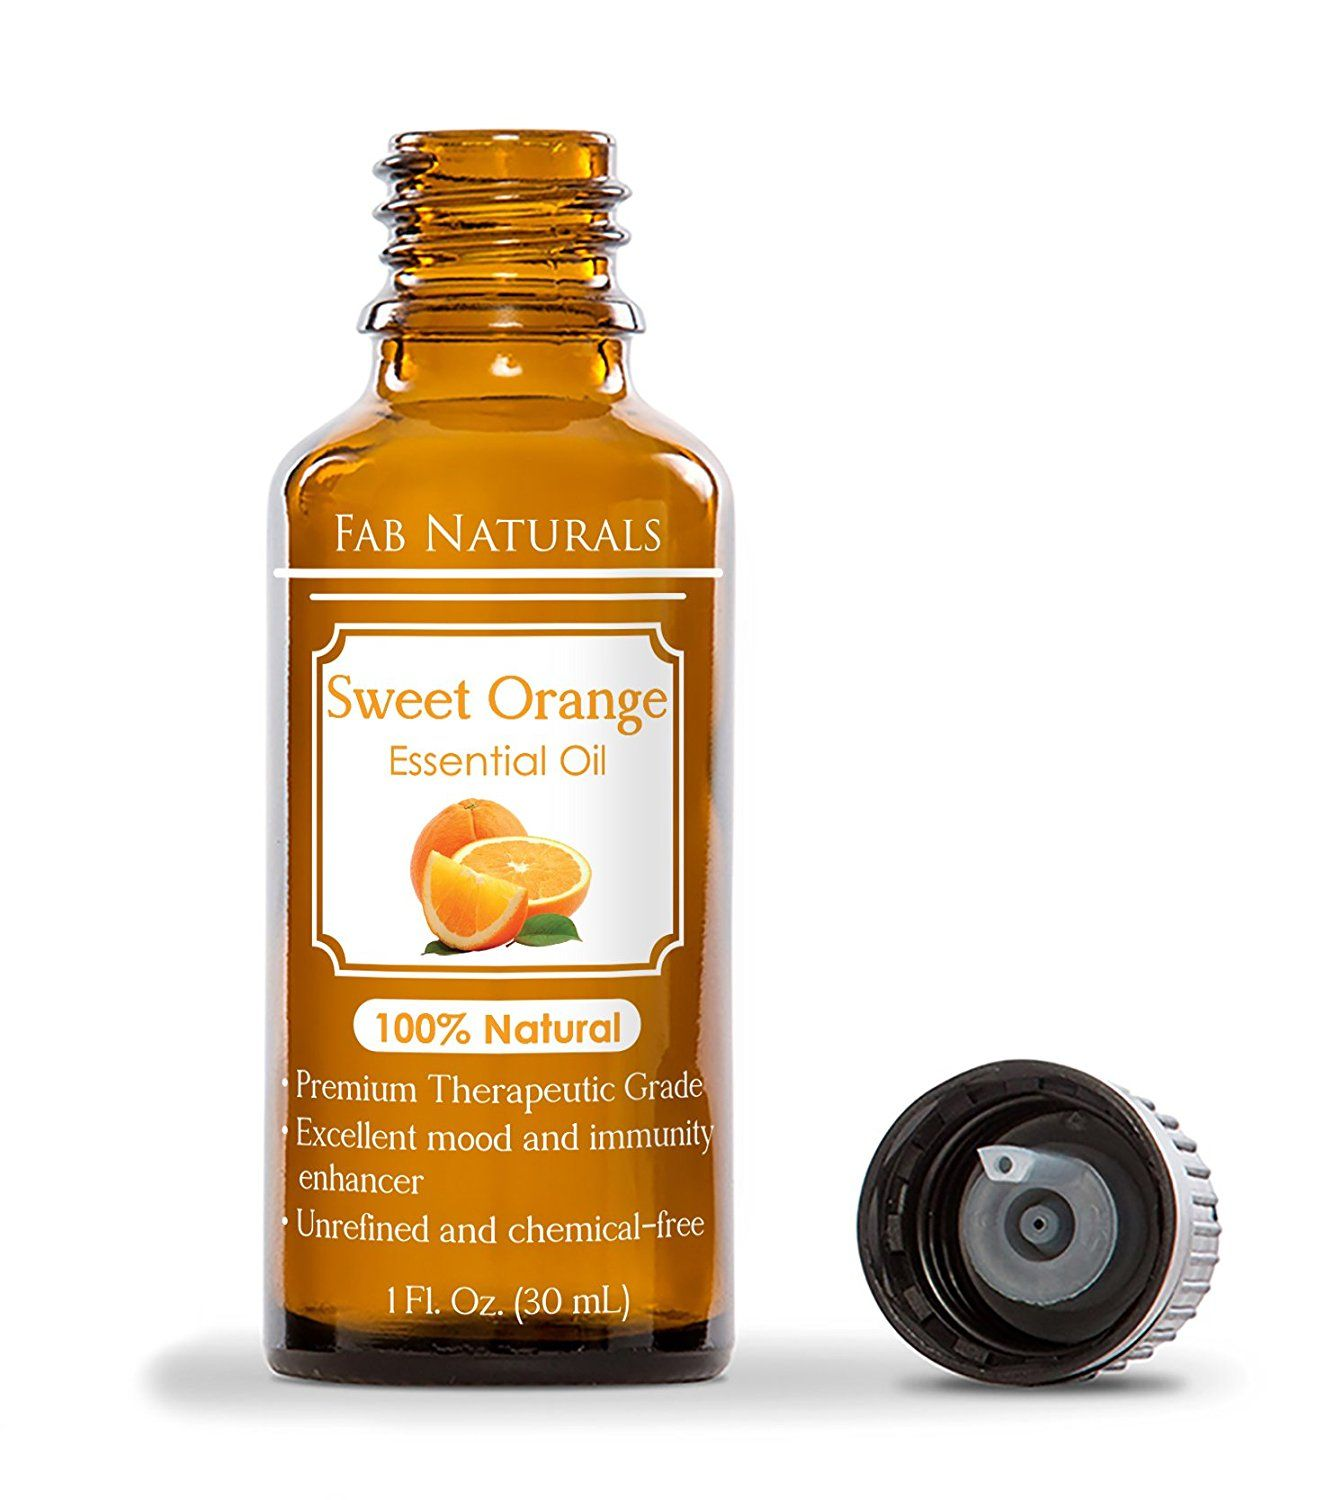 Sweet Orange Oil 100 Pure Best Essential Oil For Skin Hair Cleaning Termites Wood 1 Oz Hig With Images Essential Oils Sweet Orange Essential Oil Now Essential Oils